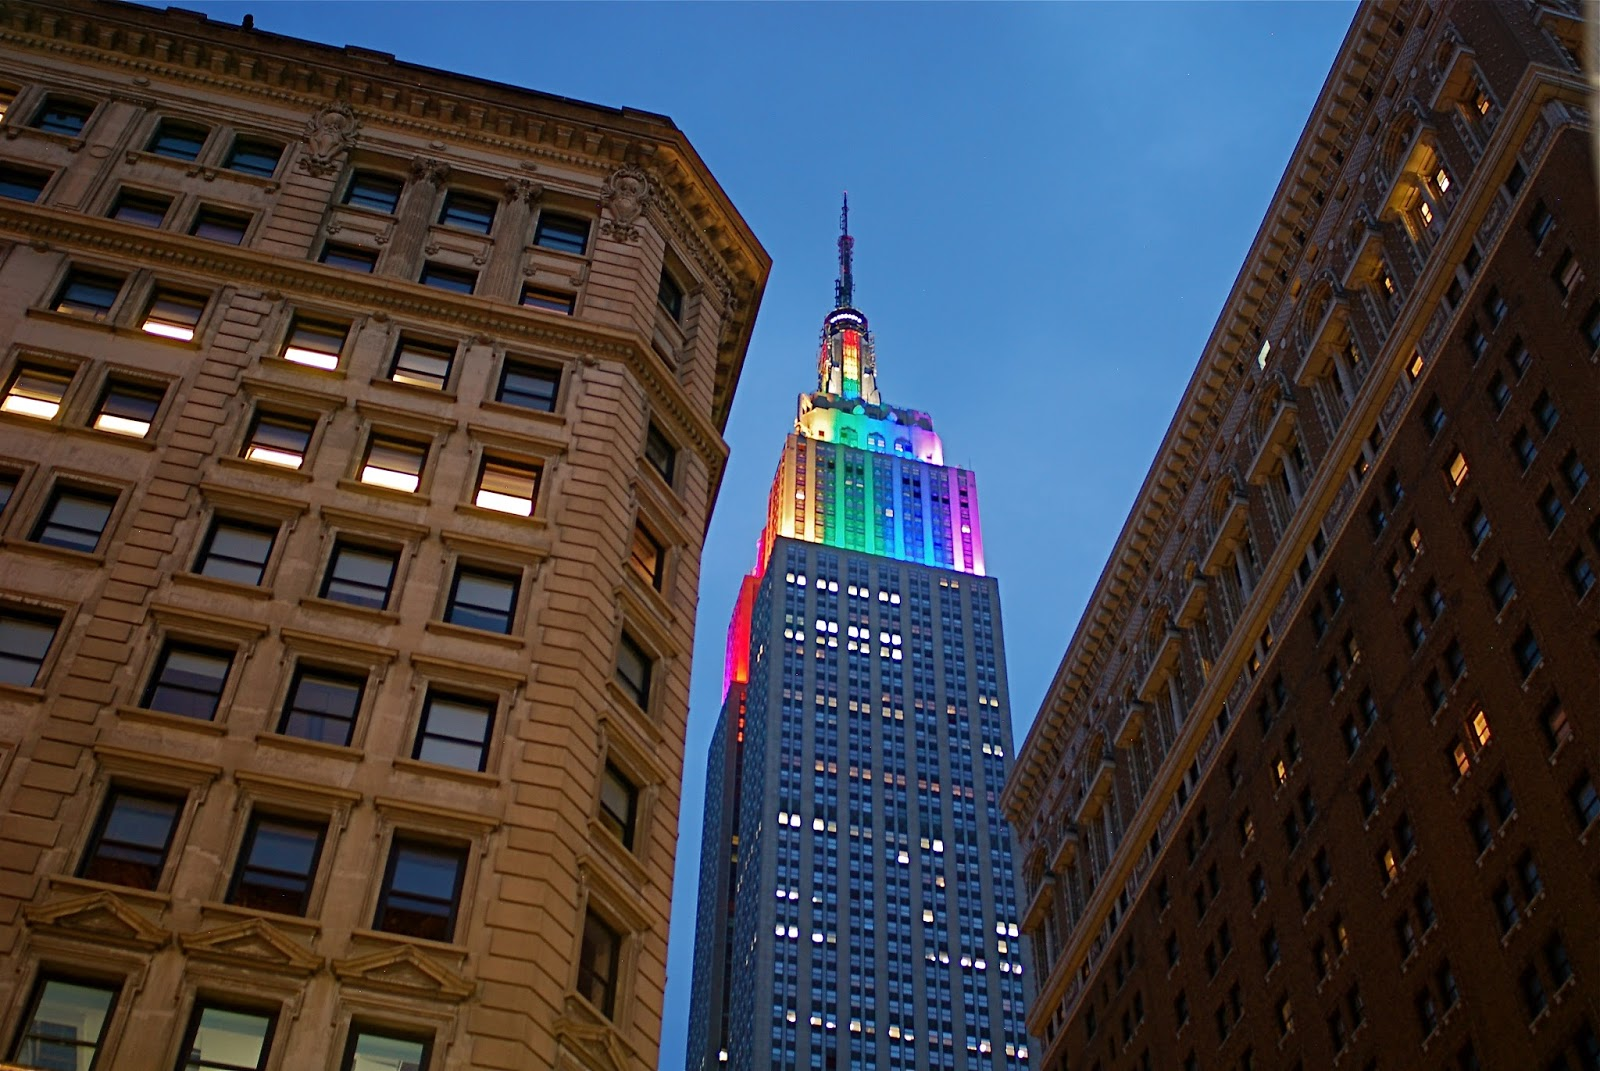 Empire State Building: NYC ♥ NYC: The Empire State Building Top Tier Lights Up In